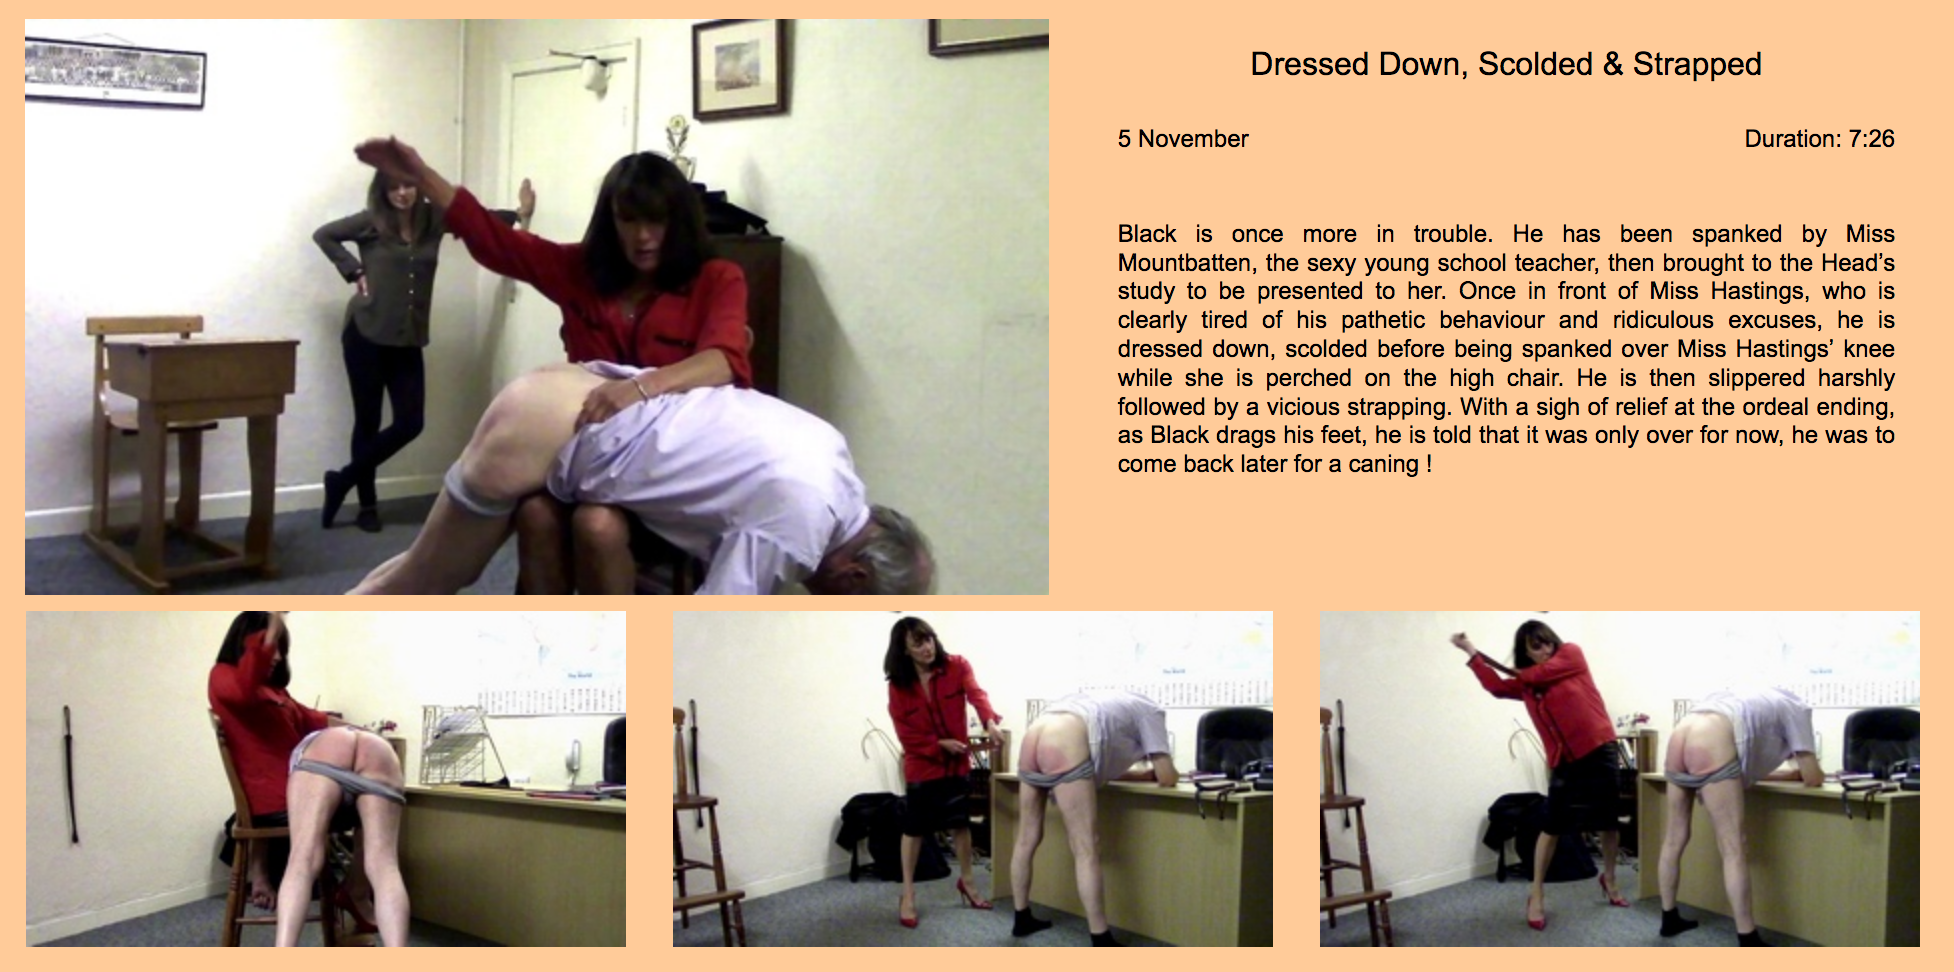 Black is once more in trouble. He has been spanked by Miss Mountbatten, the sexy young school teacher, then brought to the Head's study to be presented to her. Once in front of Miss Hastings, who is clearly tired of his pathetic behaviour and ridiculous excuses, he is dressed down, scolded before being spanked over Miss Hastings' knee while she is perched on the high chair. He is then slippered harshly followed by a vicious strapping. With a sigh of relief at the ordeal ending, as Black drags his feet, he is told that it was only over for now, he was to come back later for a caning !